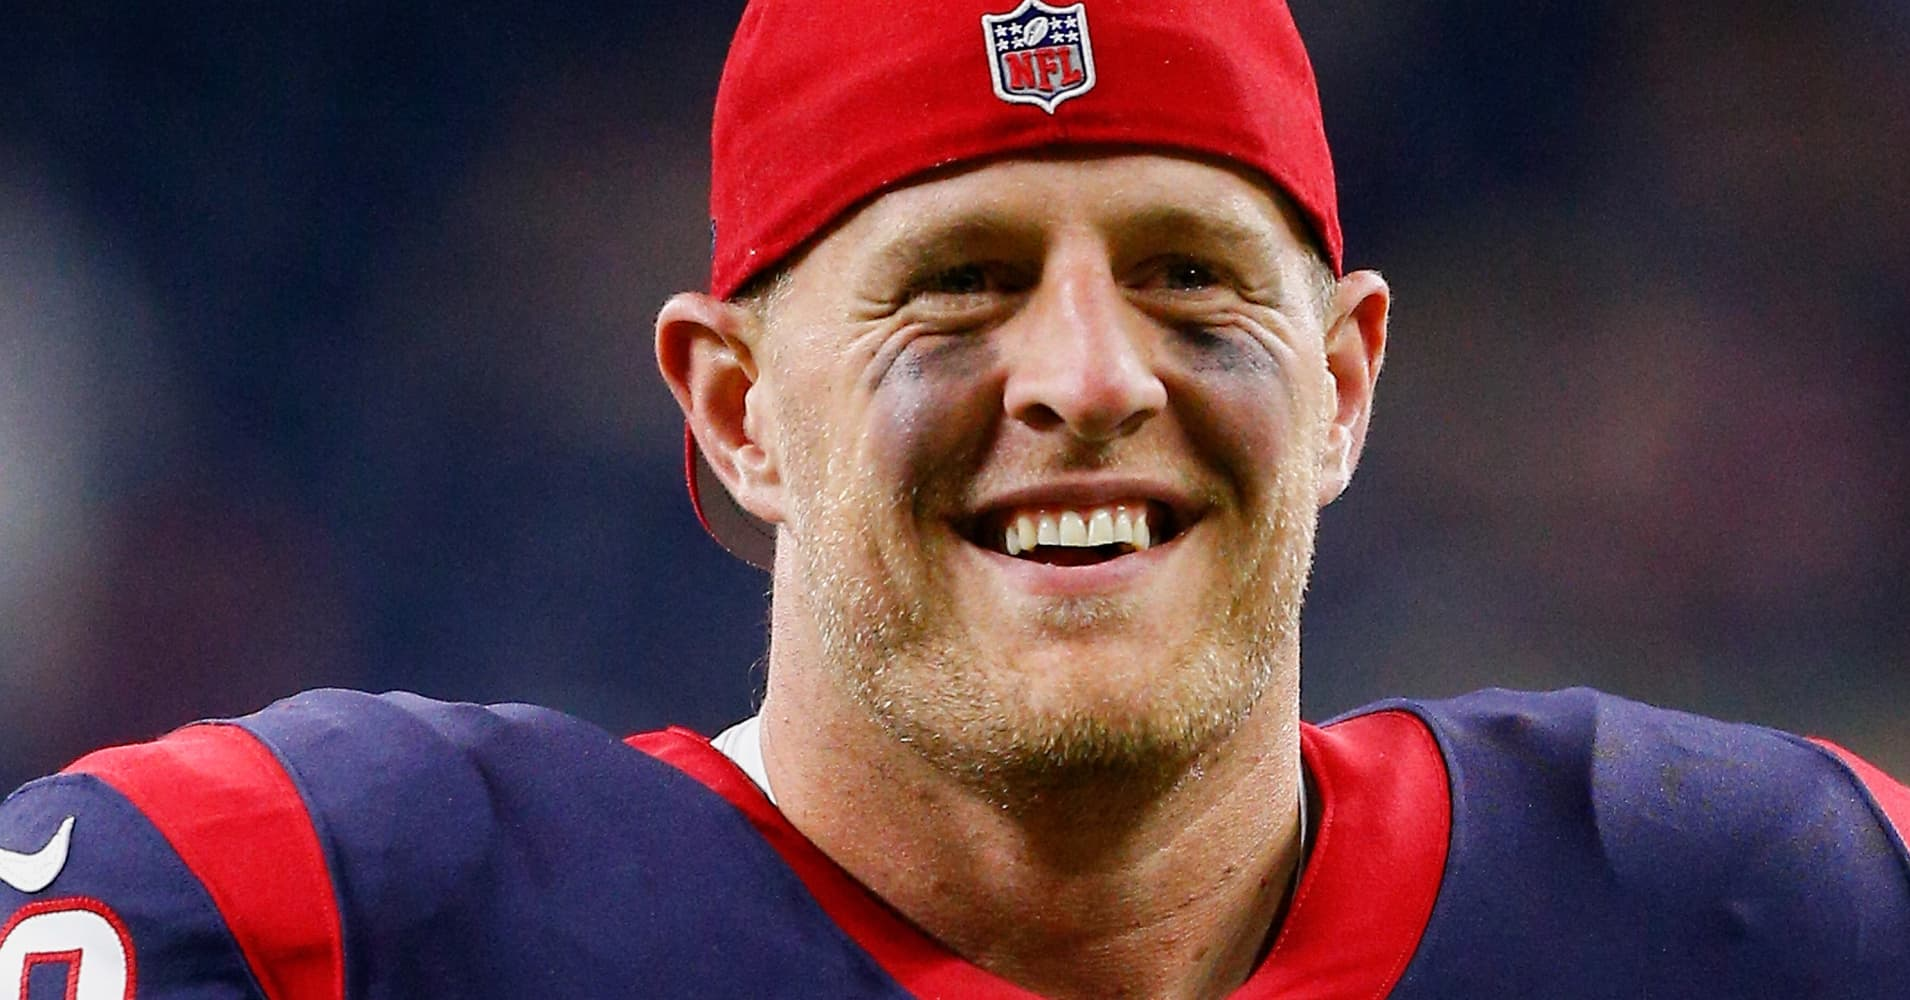 HOUSTON, TX - AUGUST 19: J.J. Watt #99 of the Houston Texans walks off the field after a 27-23 win over the New England Patriotsin a preseason game at NRG Stadium on August 19, 2017 in Houston, Texas. (Photo by Bob Levey/Getty Images)